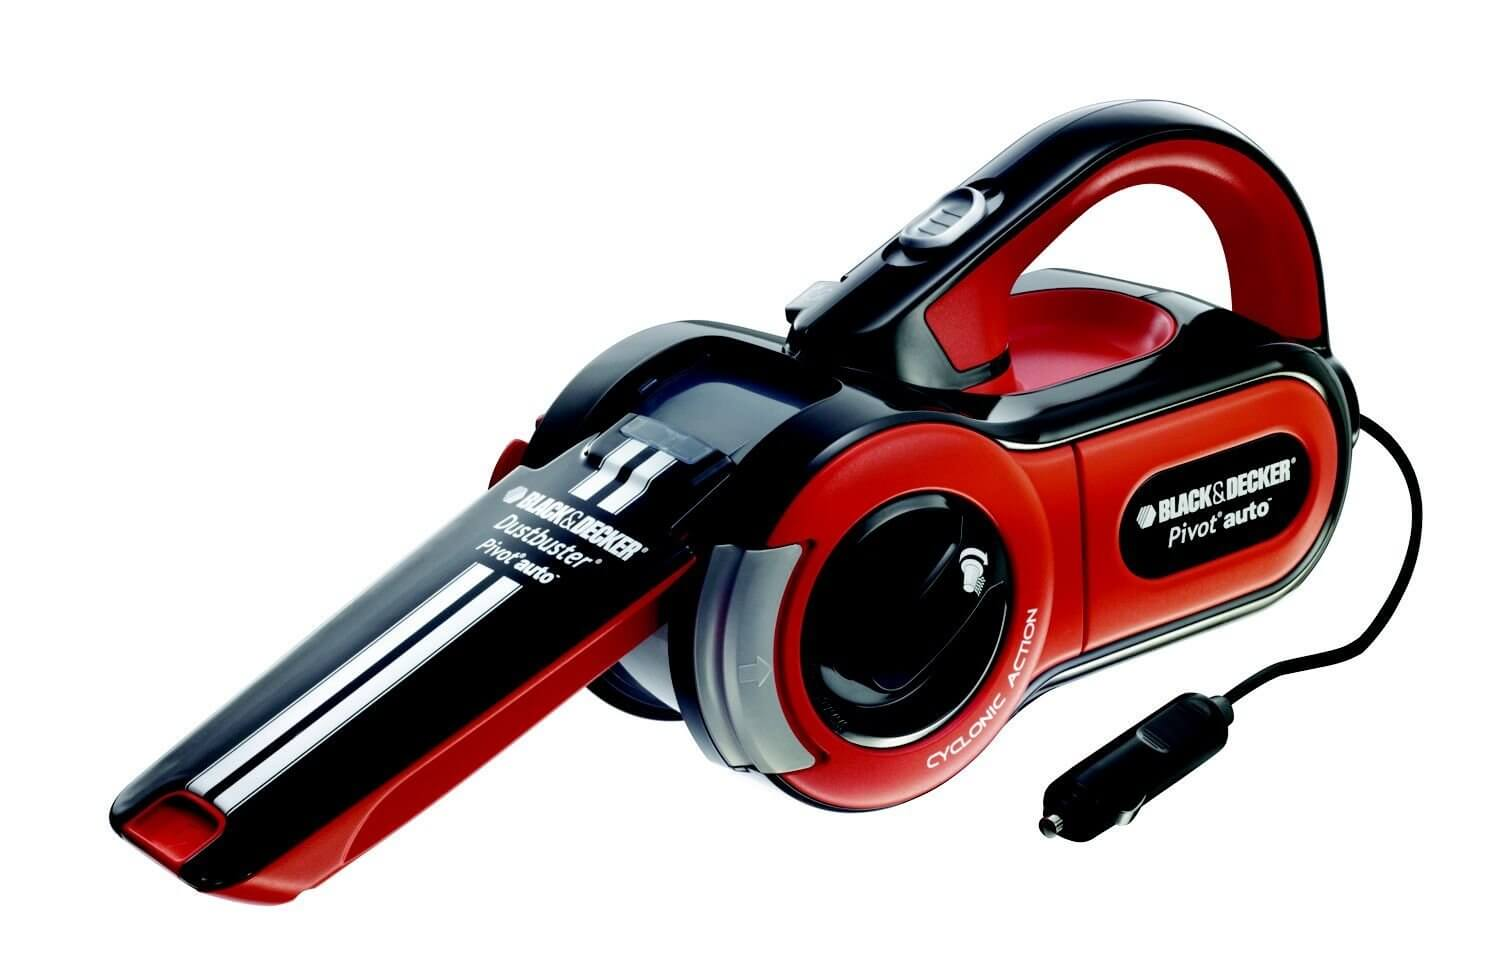 Best Car Vacuum Uk